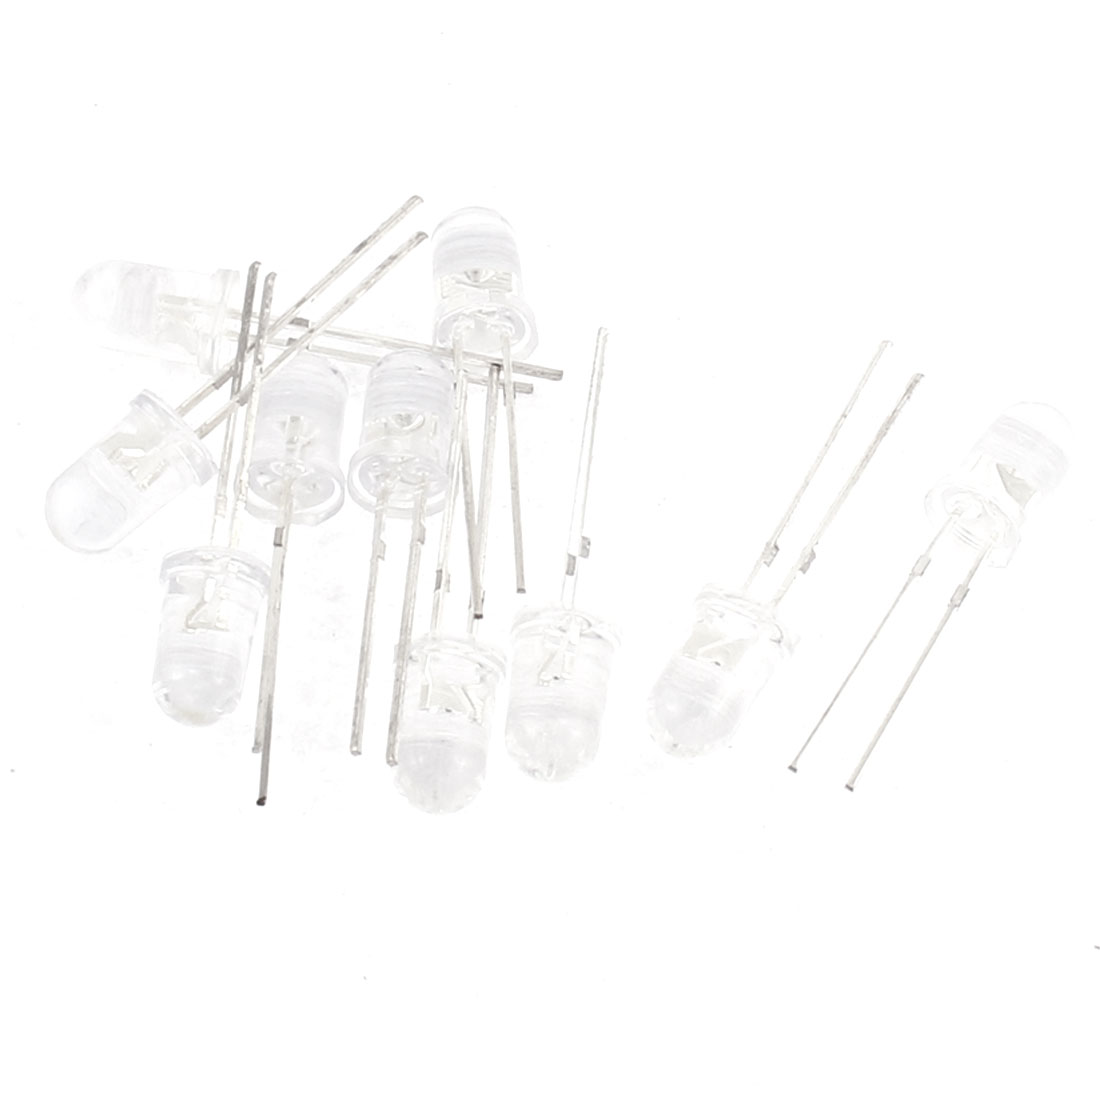 10pcs 5mm LED Yellow White Light Emitting Diode Lamps Bulds Component